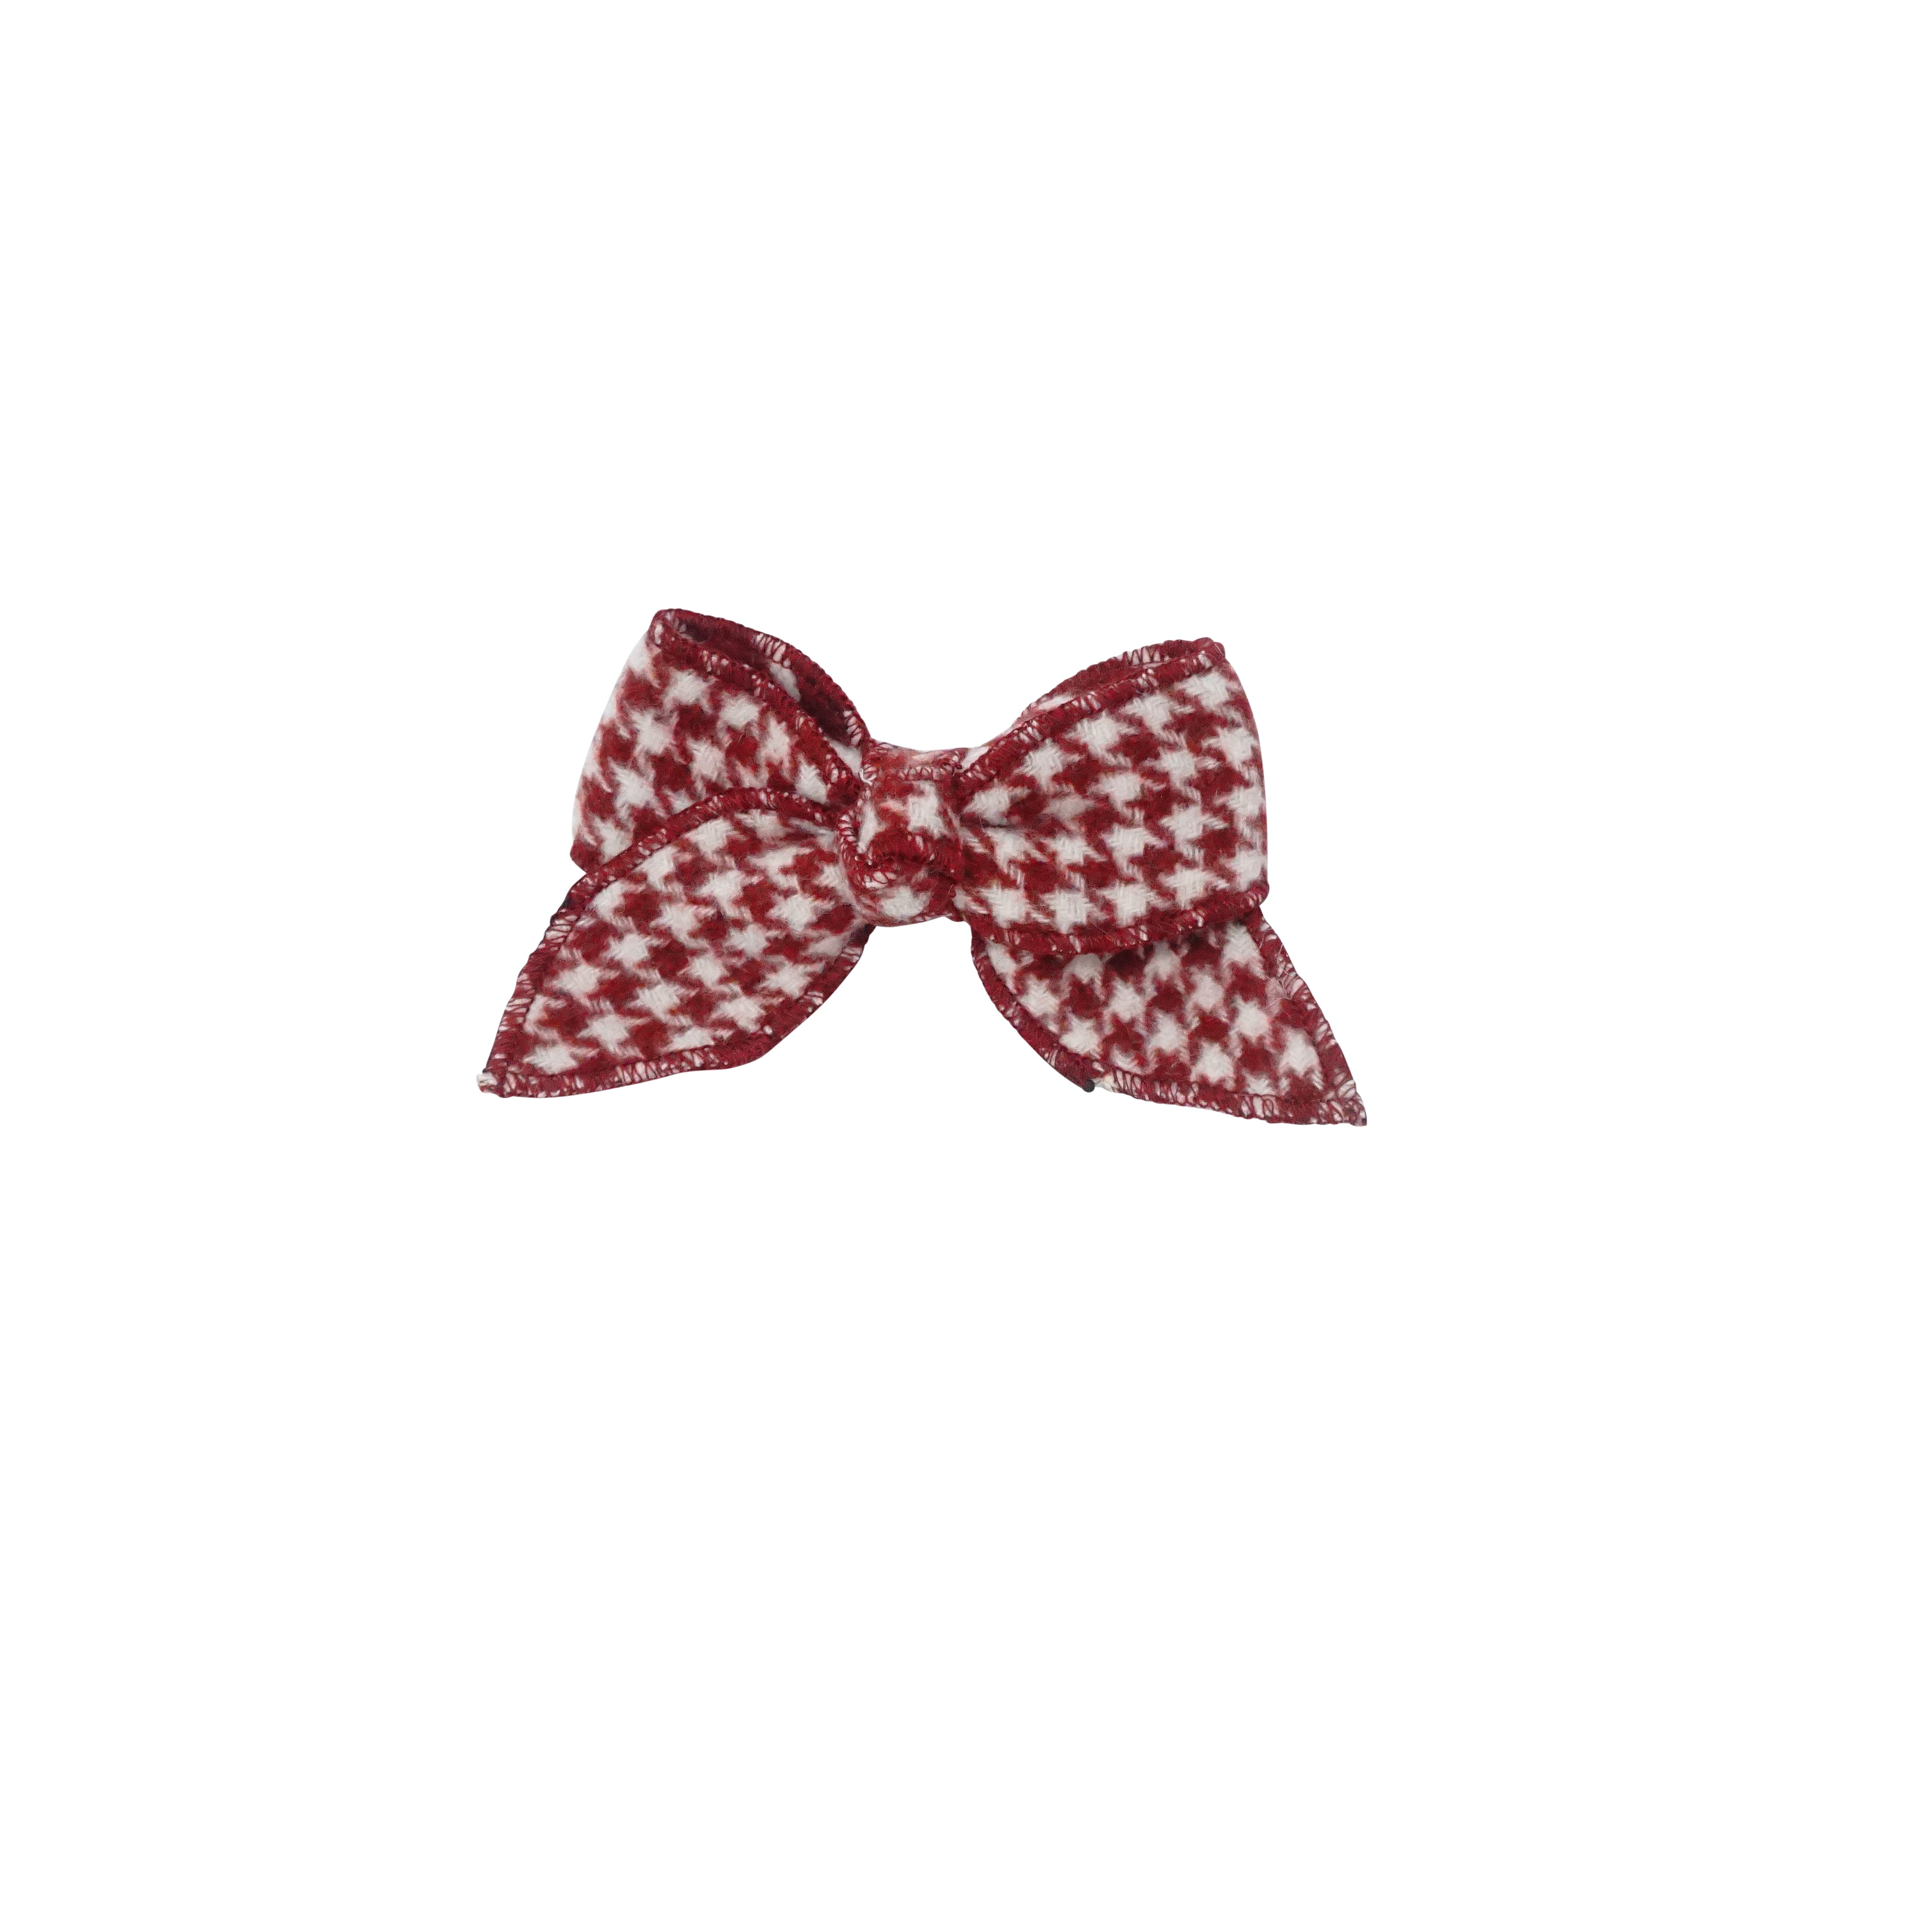 Houndstooth Bow Hair Clip - Small